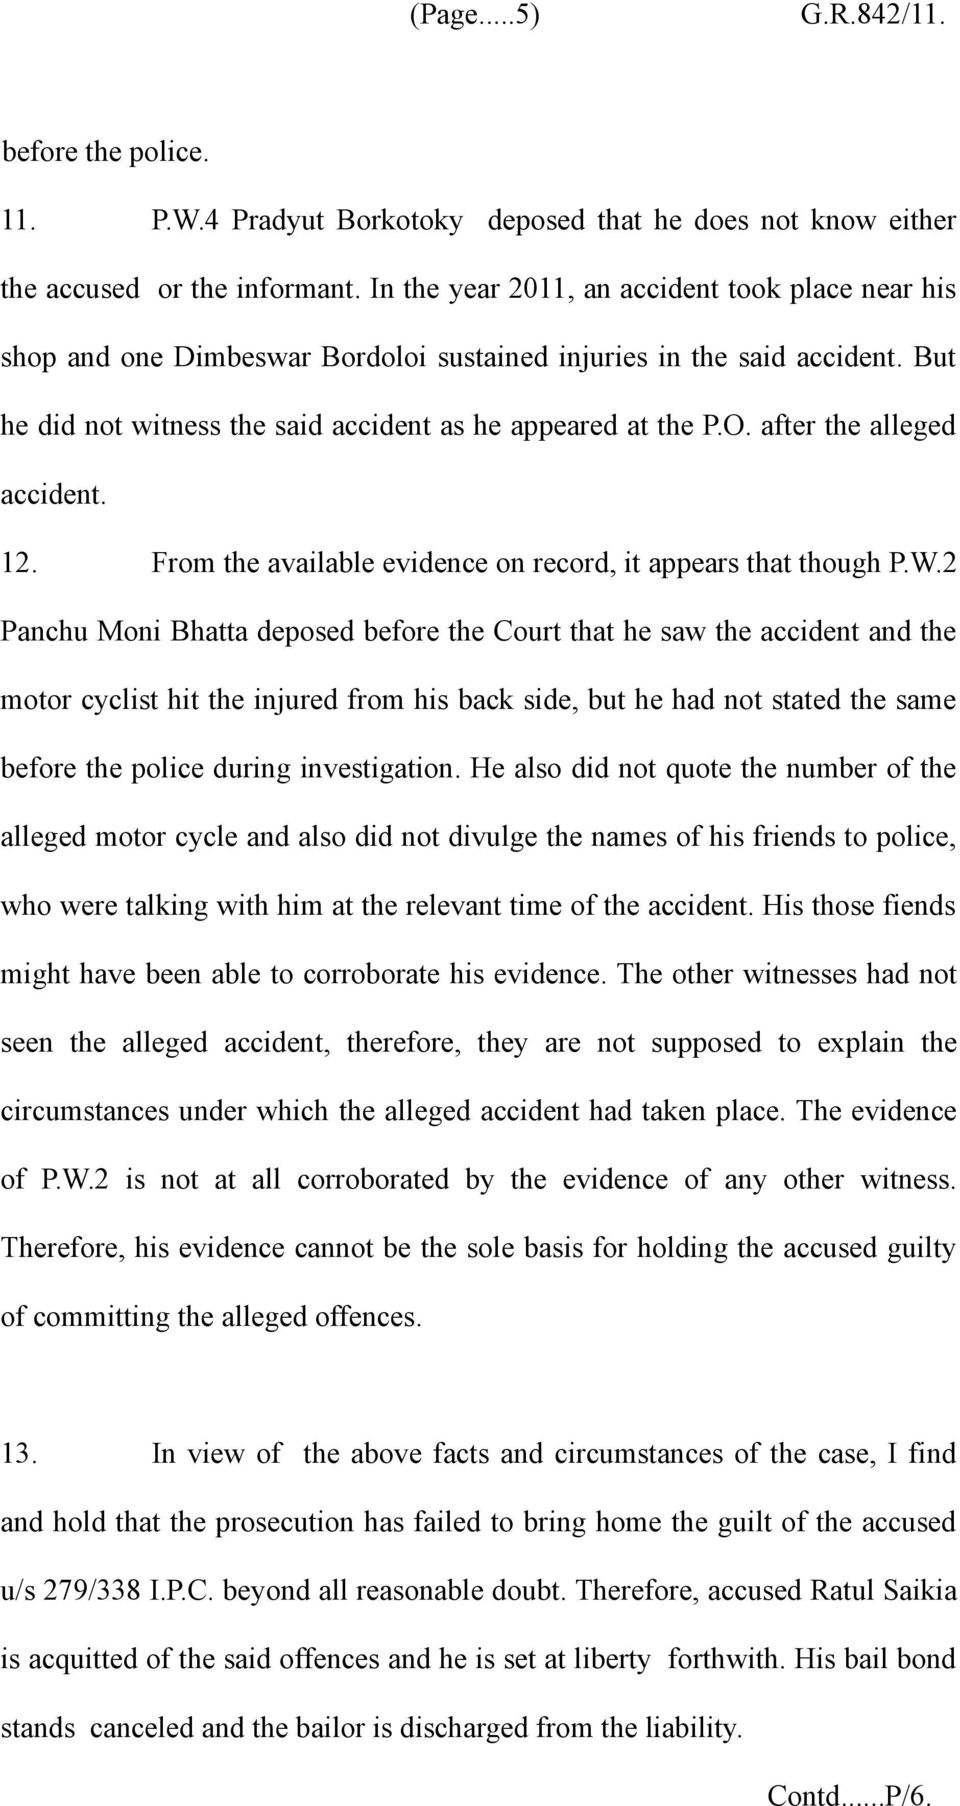 after the alleged accident. 12. From the available evidence on record, it appears that though P.W.